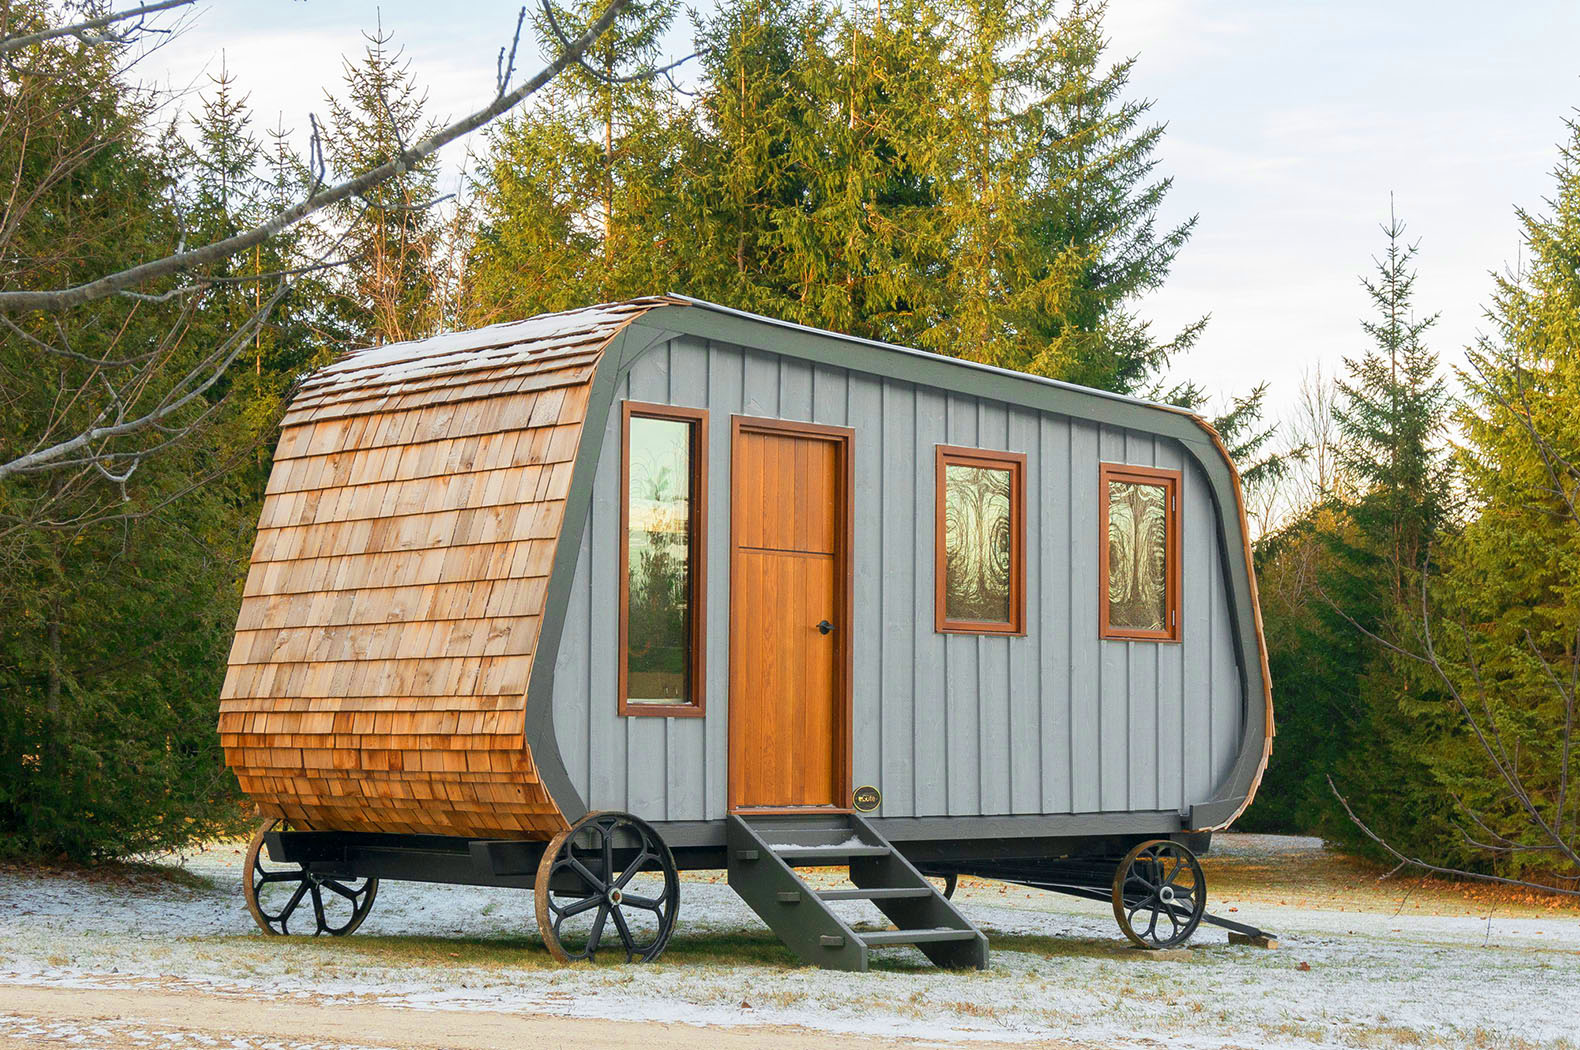 Design Tiny Houses On Wheels tiny home is living a fad or it here to stay